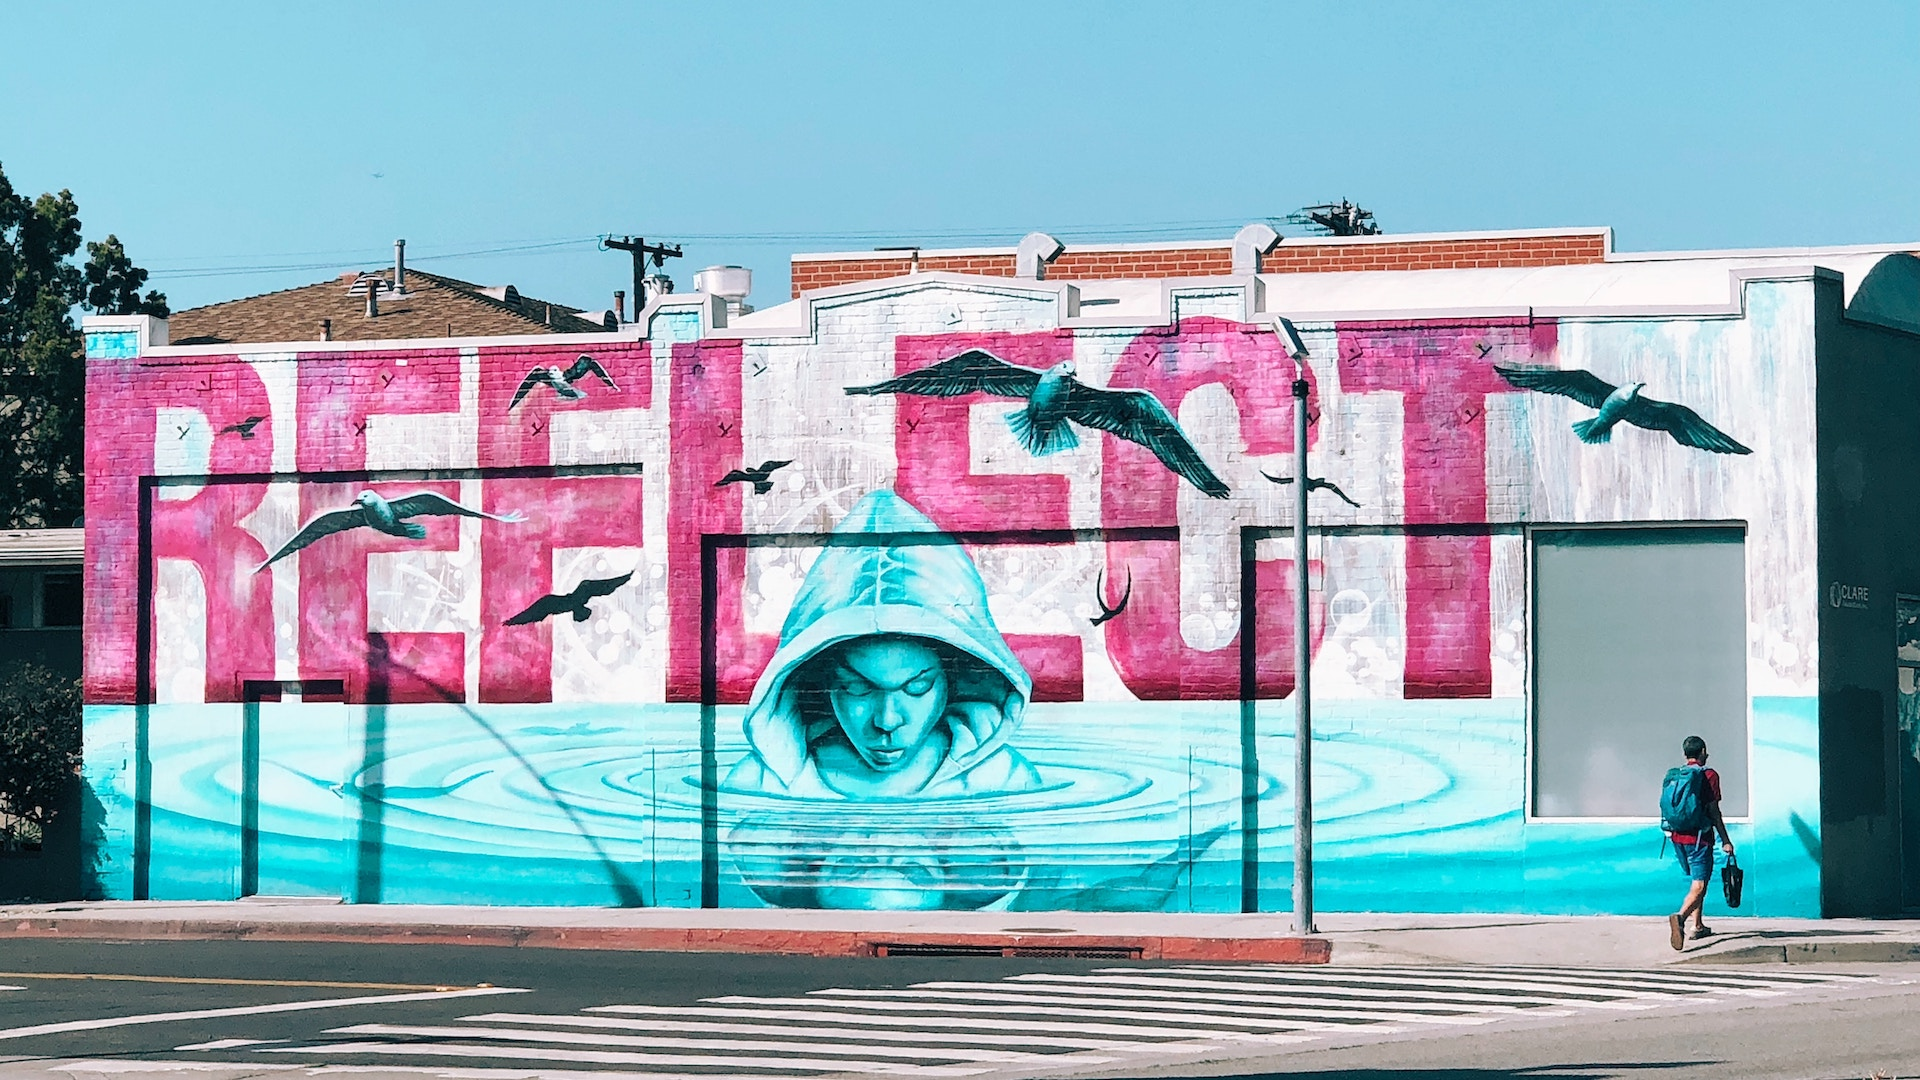 A pink and blue mural on the side of the building that features a person looking into rippling water with the word  'Reflect'